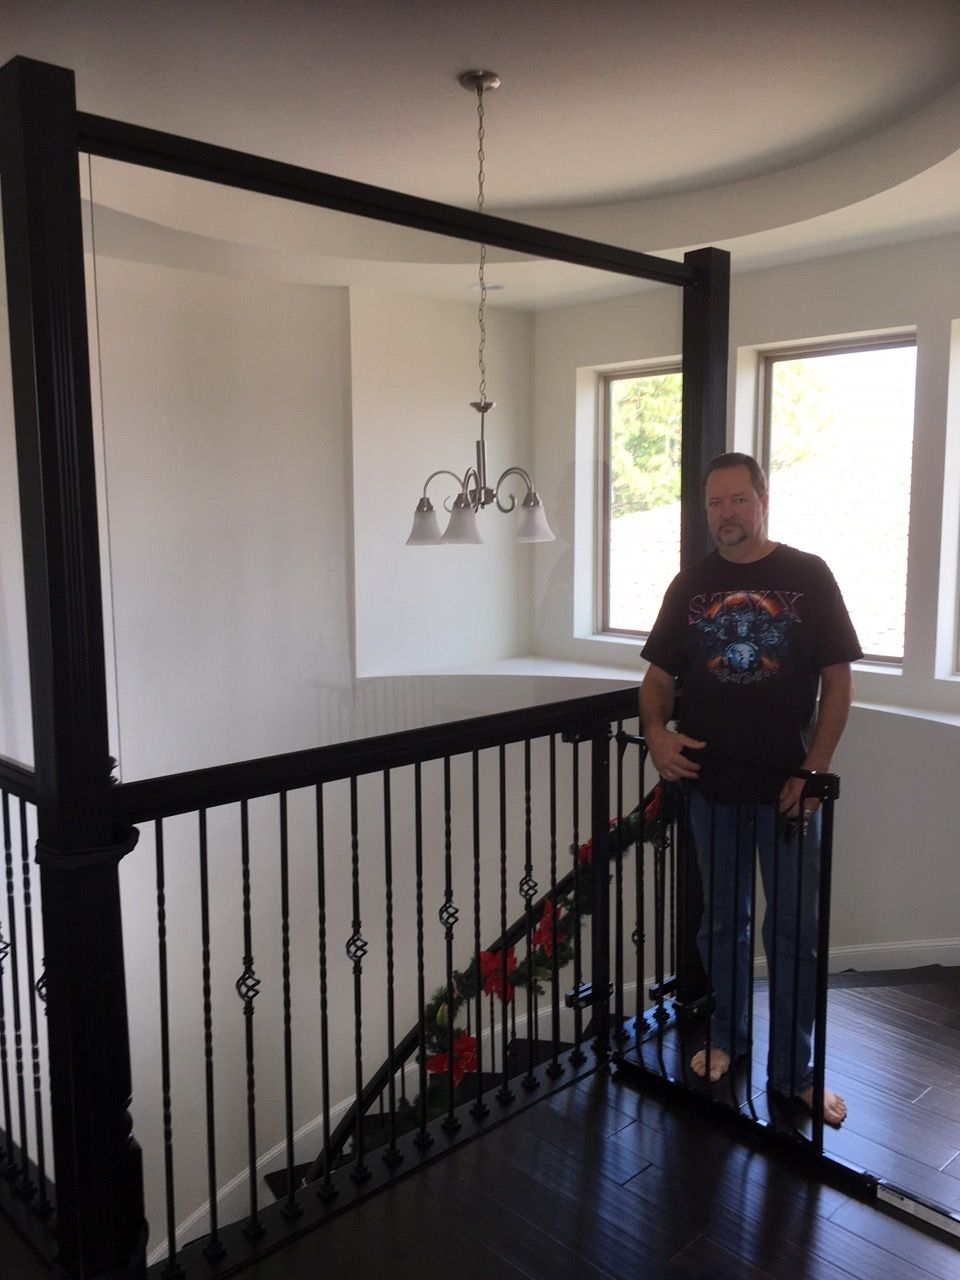 Banister Safety in 2019 Loft wall, Banisters, Baby gates